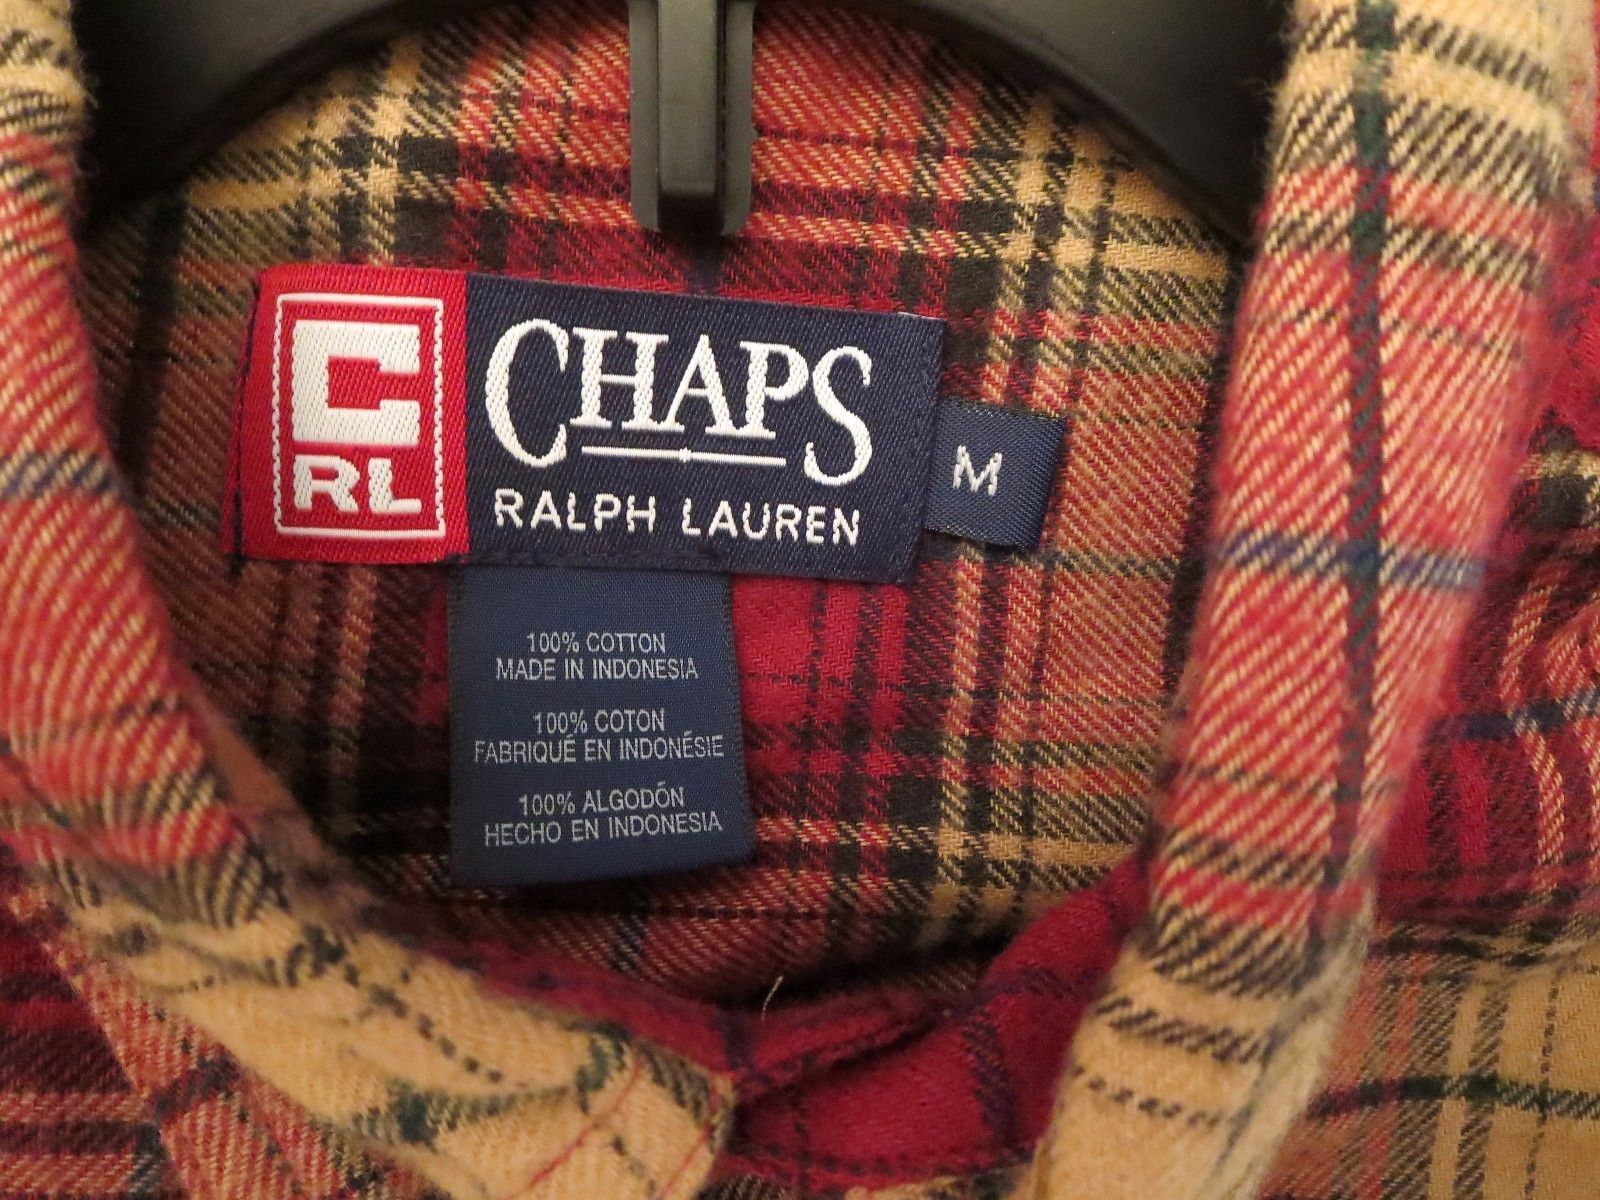 Chaps Ralph Lauren 50% OFF Men's Size M Flannel Shirt L/S Oxford New With Tags